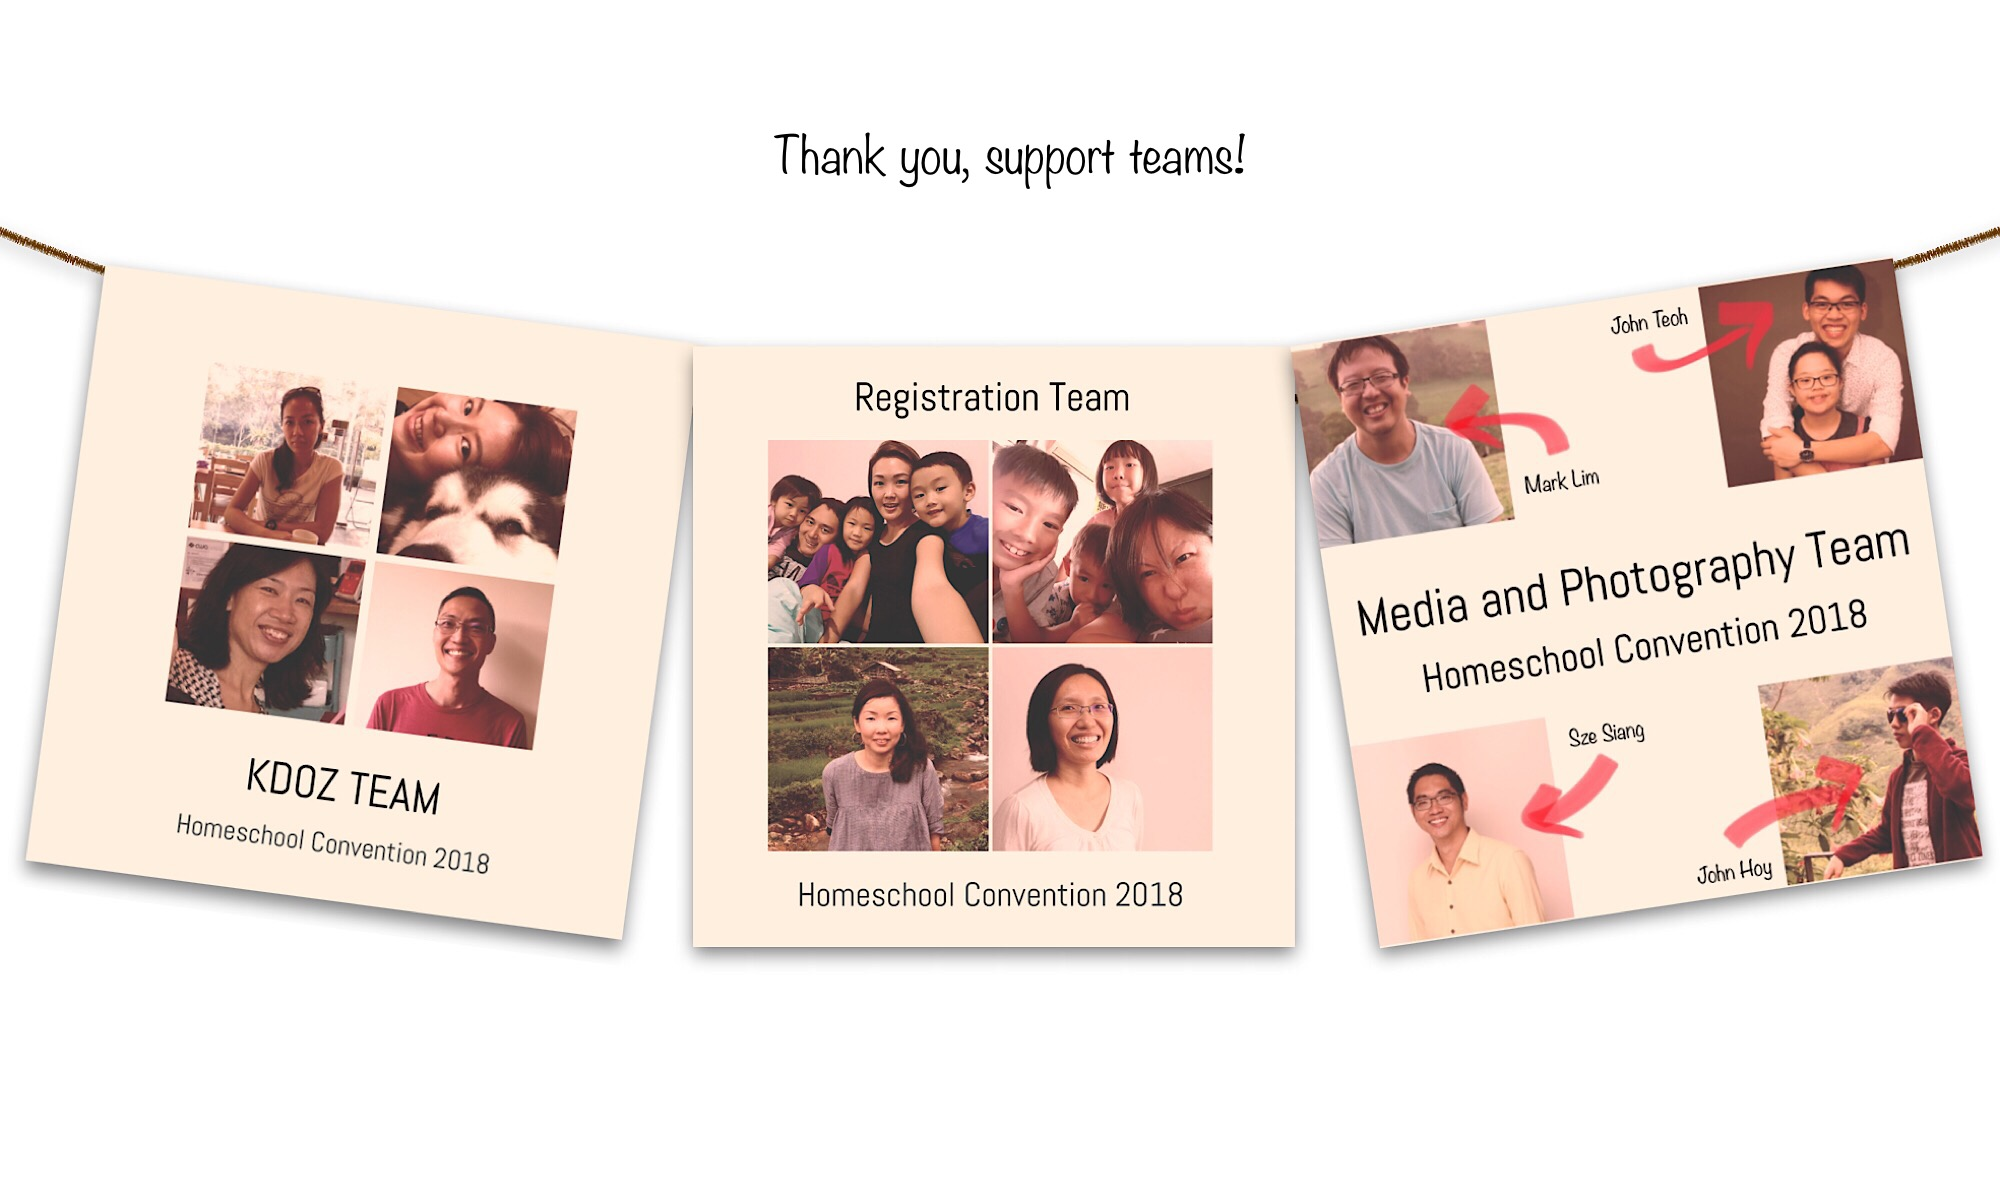 Meet the Support Teams behind the Homeschool Convention 2018!